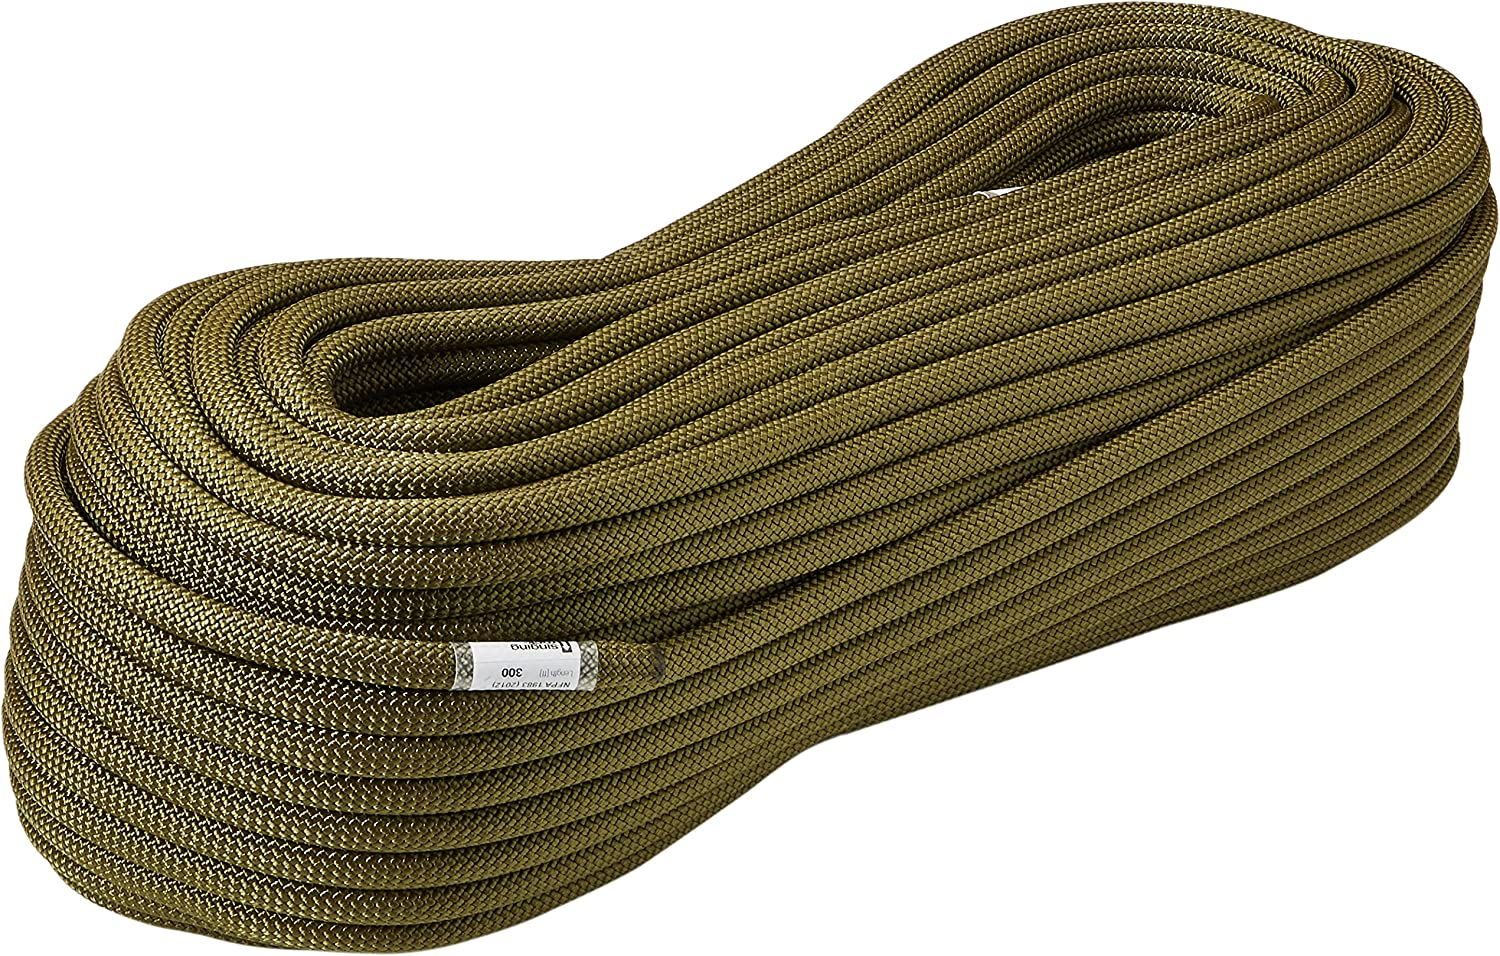 Singing Rock R44 NFPA Static Rope 11.2-mm x 200 Feet: Sports & Outdoors